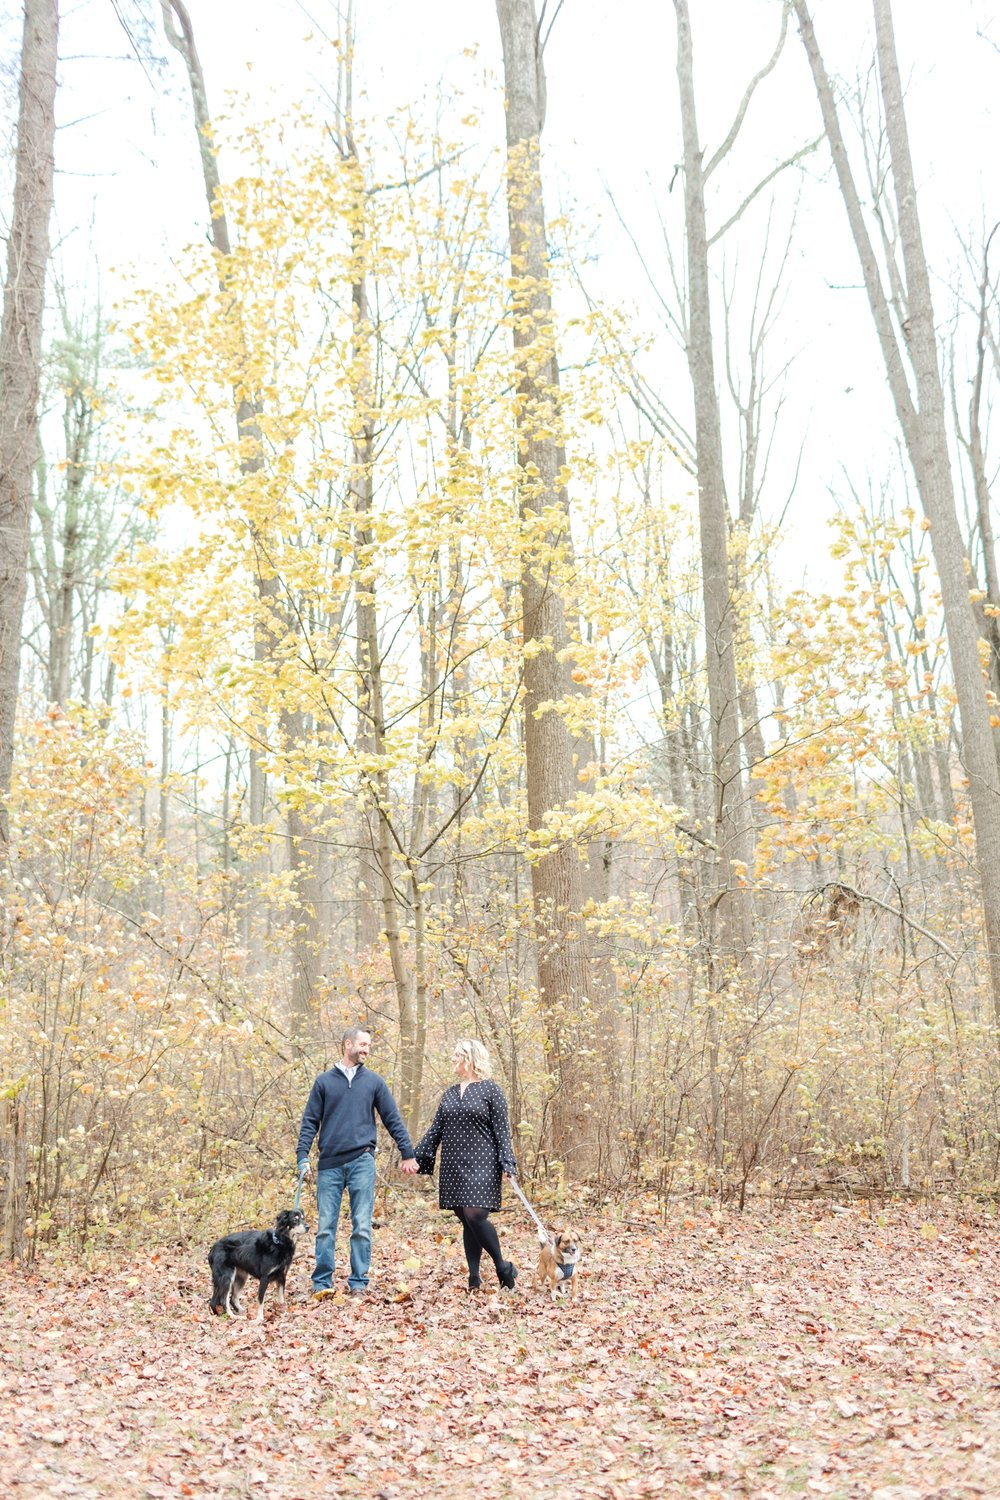 Emily Kordish & John Winkler Engagement-60_loch-raven-reservoir-baltimore-maryland-engagement-photography-anna-grace-photography-photo.jpg